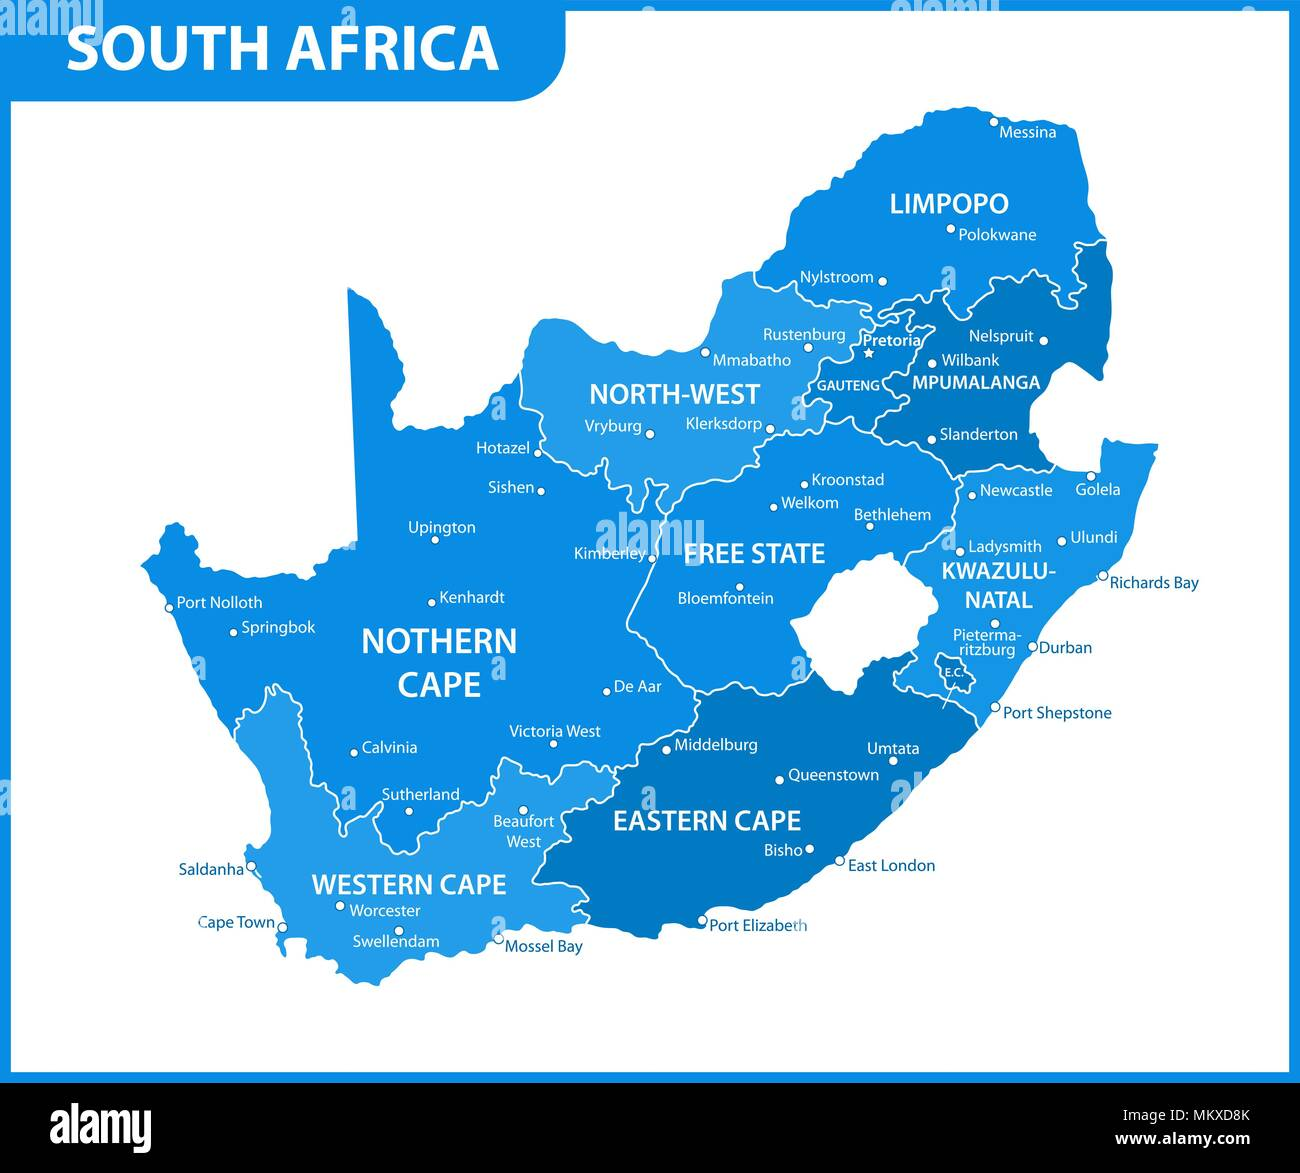 Map South Africa States The detailed map of South Africa with regions or states and cities